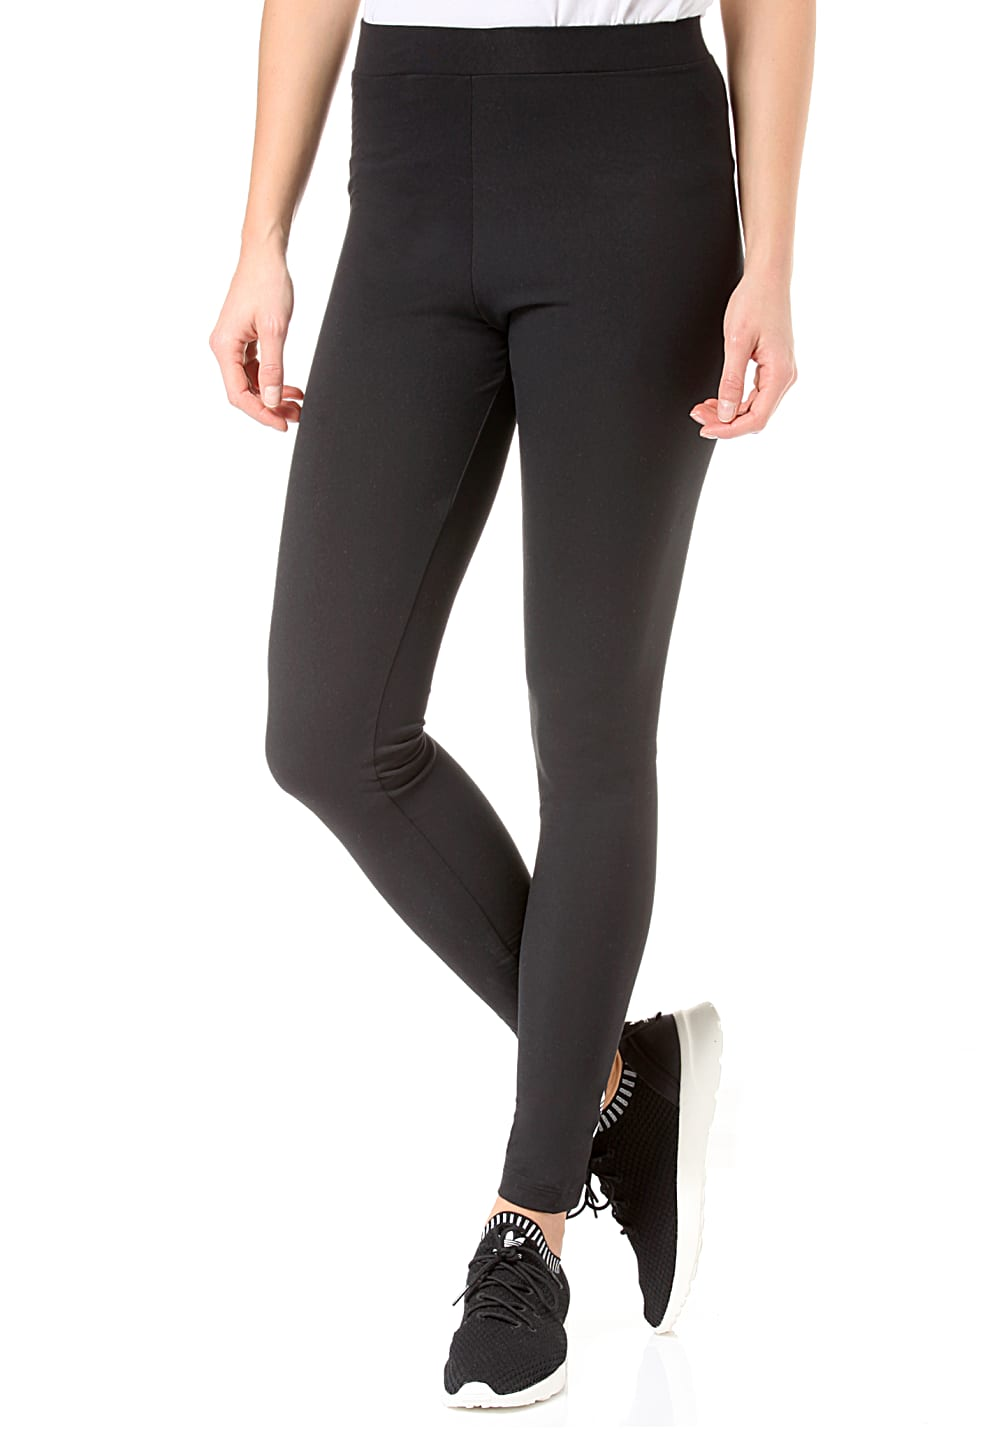 Wnnv0m8 Pour Adidas Tight Leggings Noir Femme Originals Trefoil Planet zMVSpU